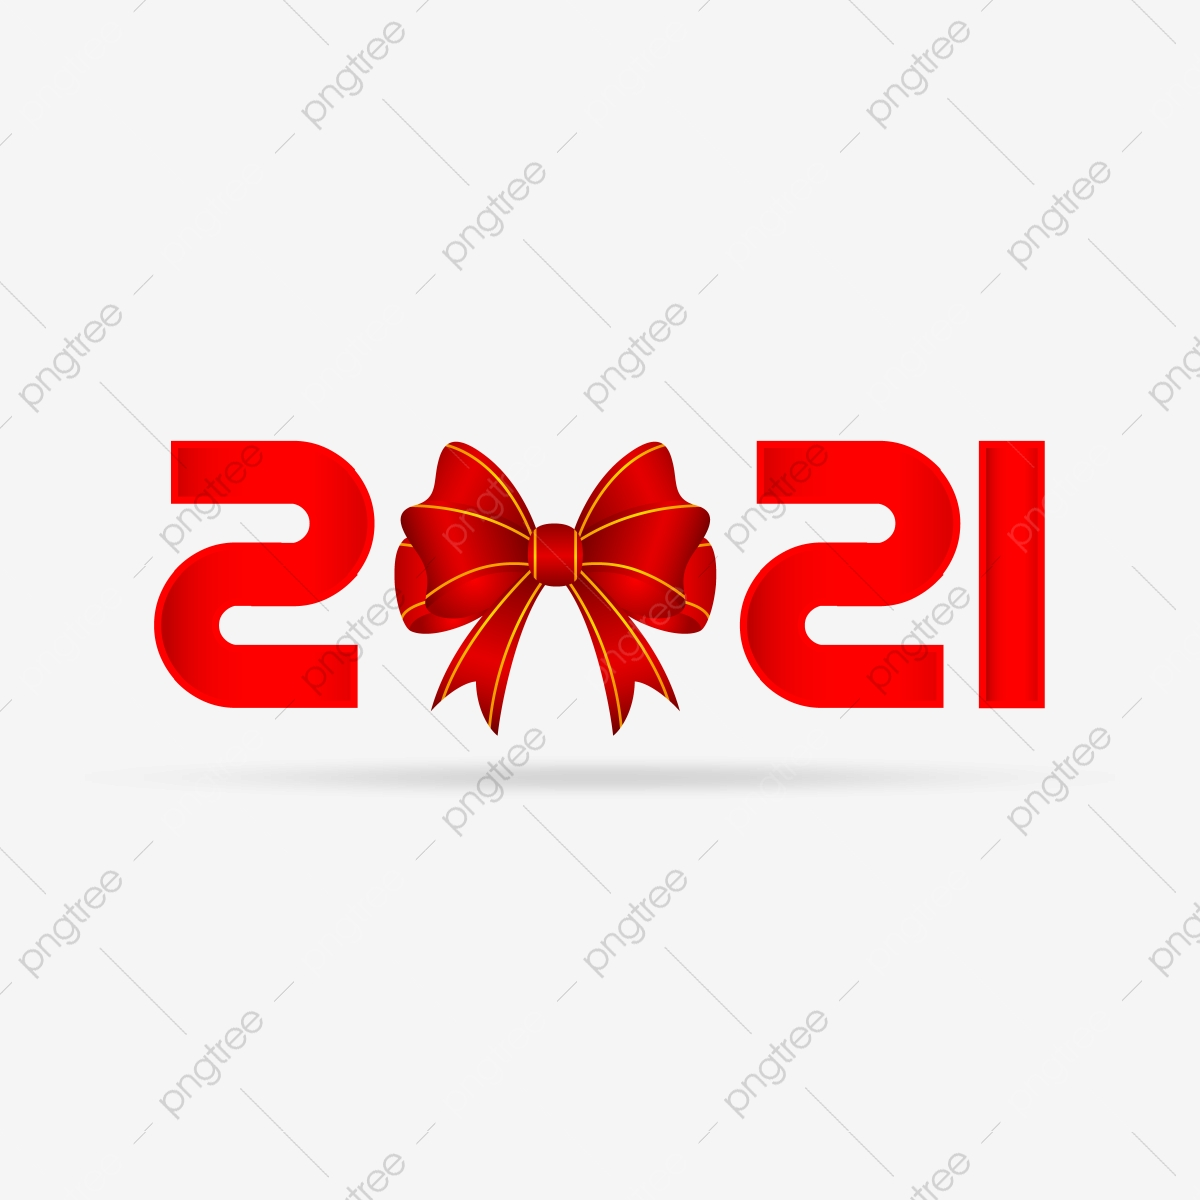 Christmas Ribbon 2021 Happy New Year 2021 With Christmas Ribbon Happy New Year 2021 Celebration Png And Vector With Transparent Background For Free Download